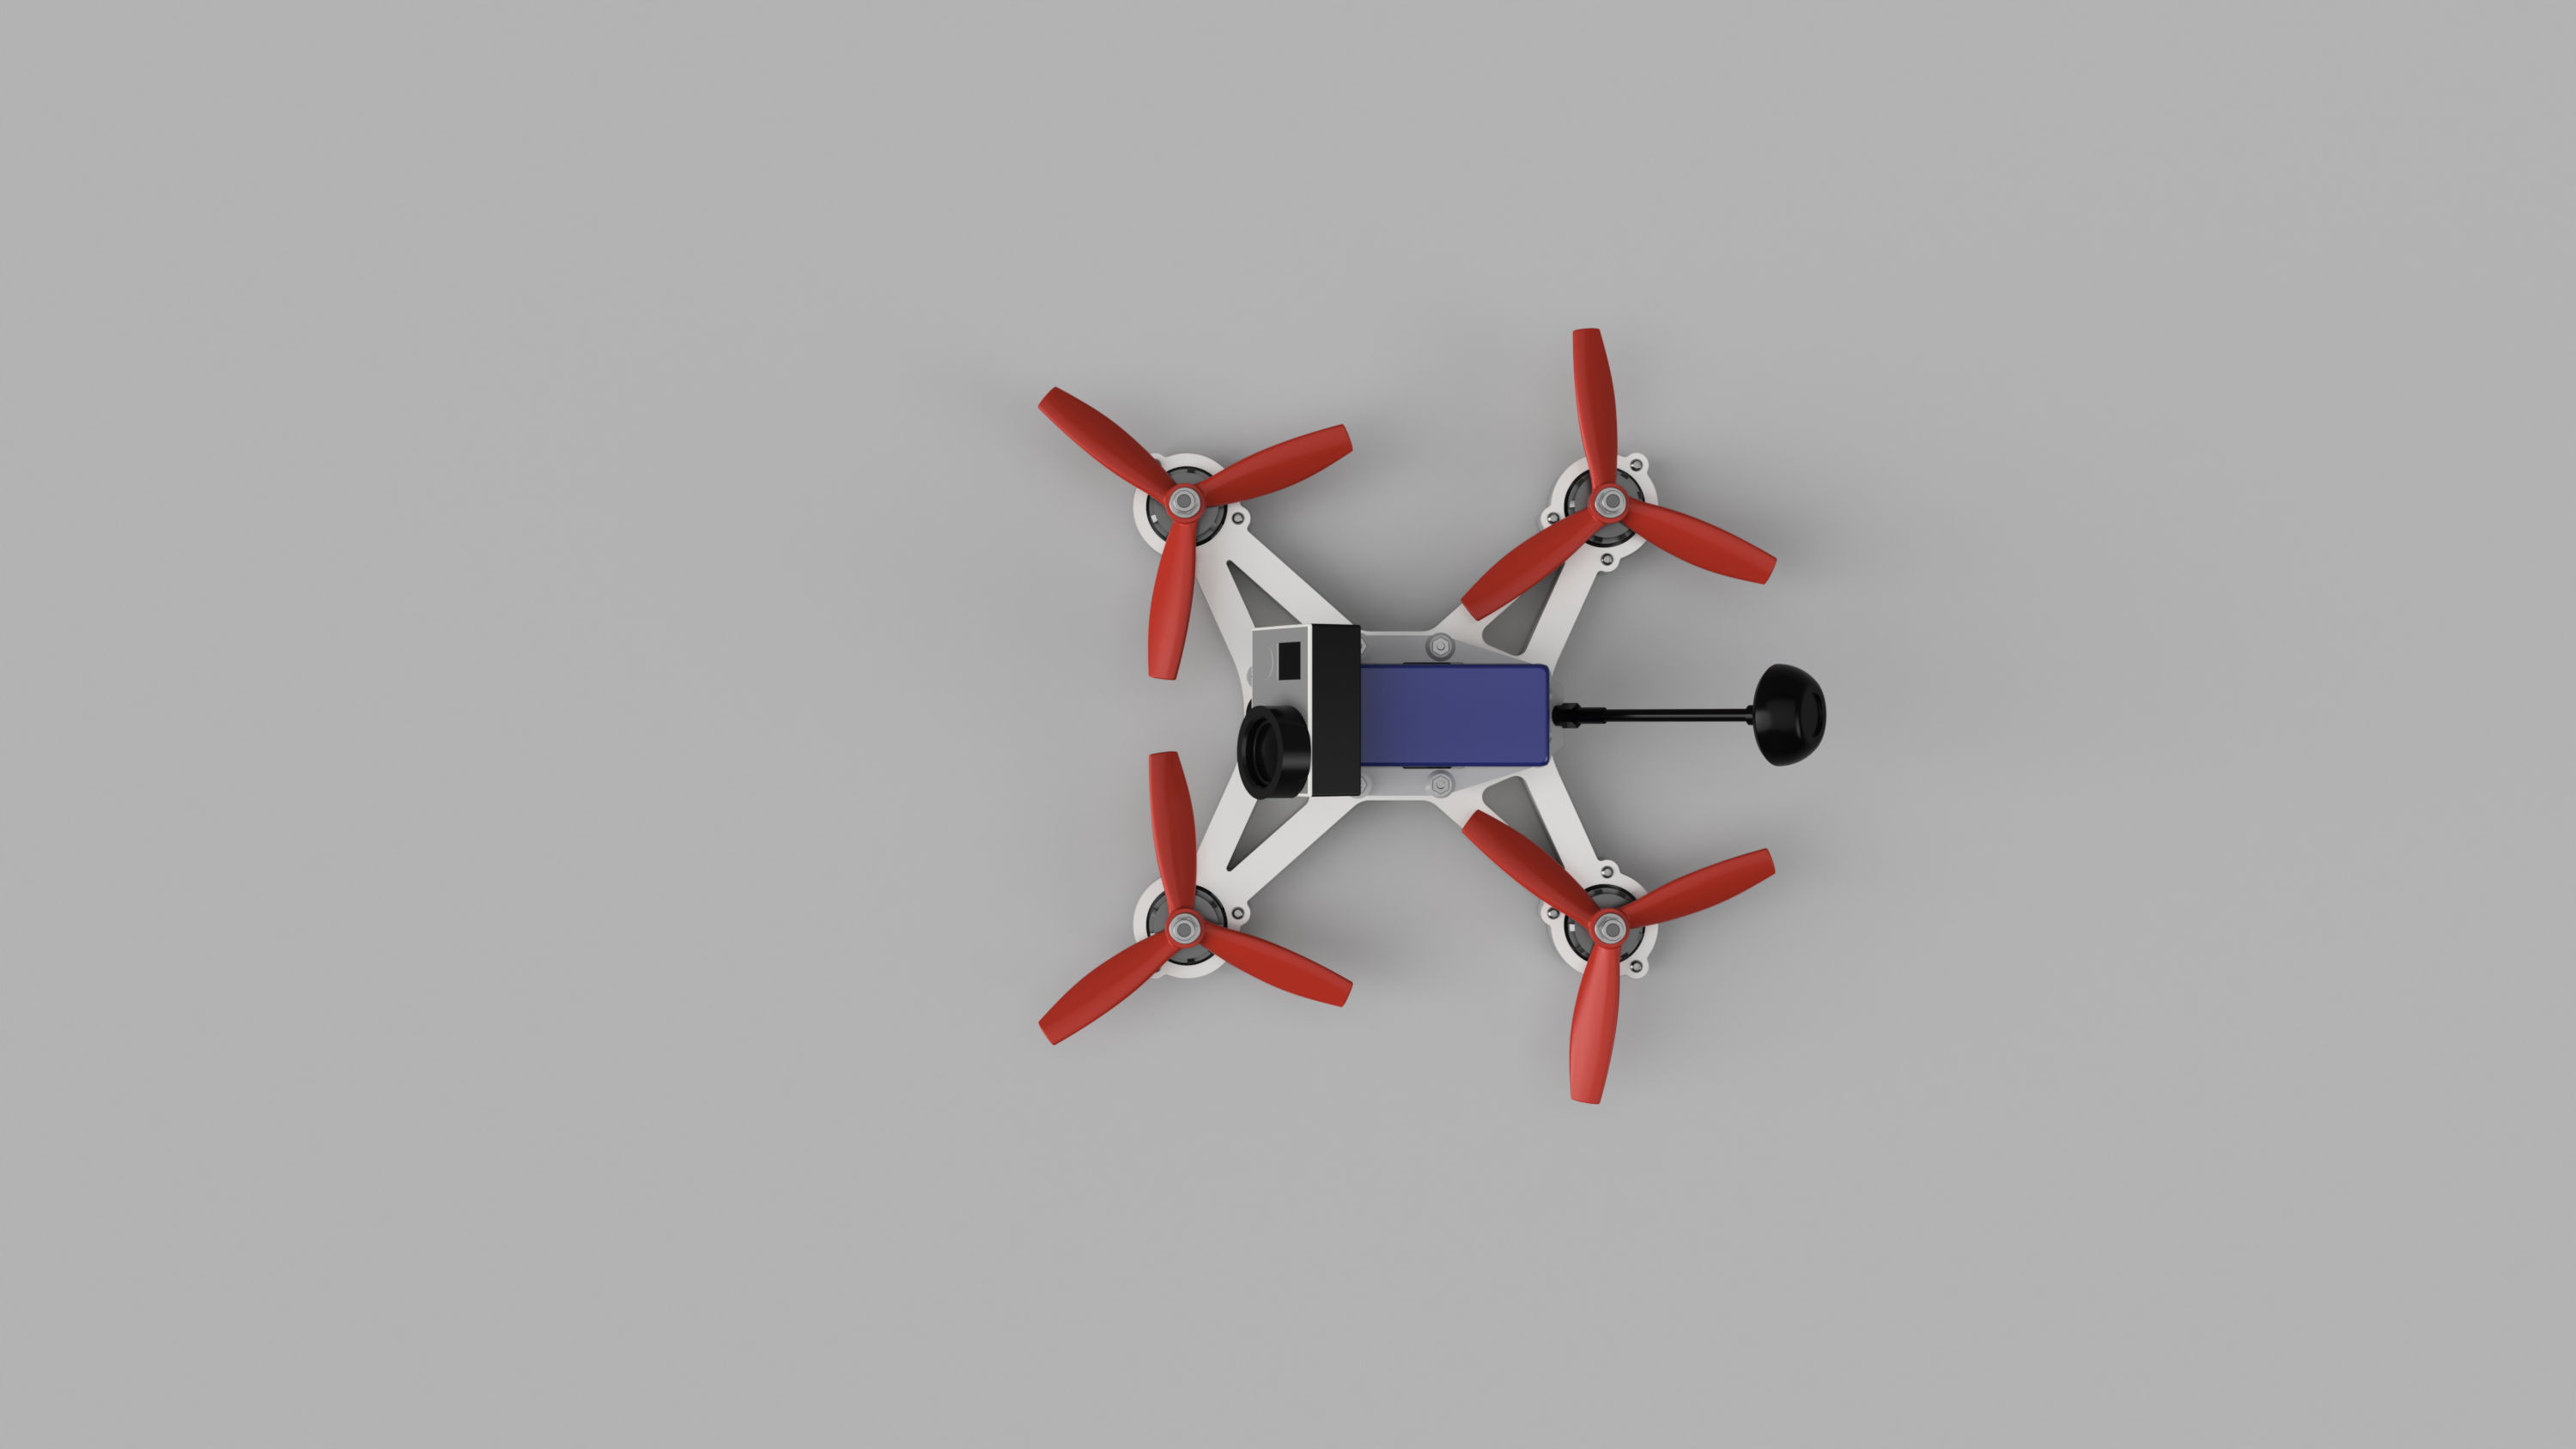 Openrc-220-fpv-racer-v175-2017-feb-12-12-19-56pm-000-customizedview9955033850-3500-3500